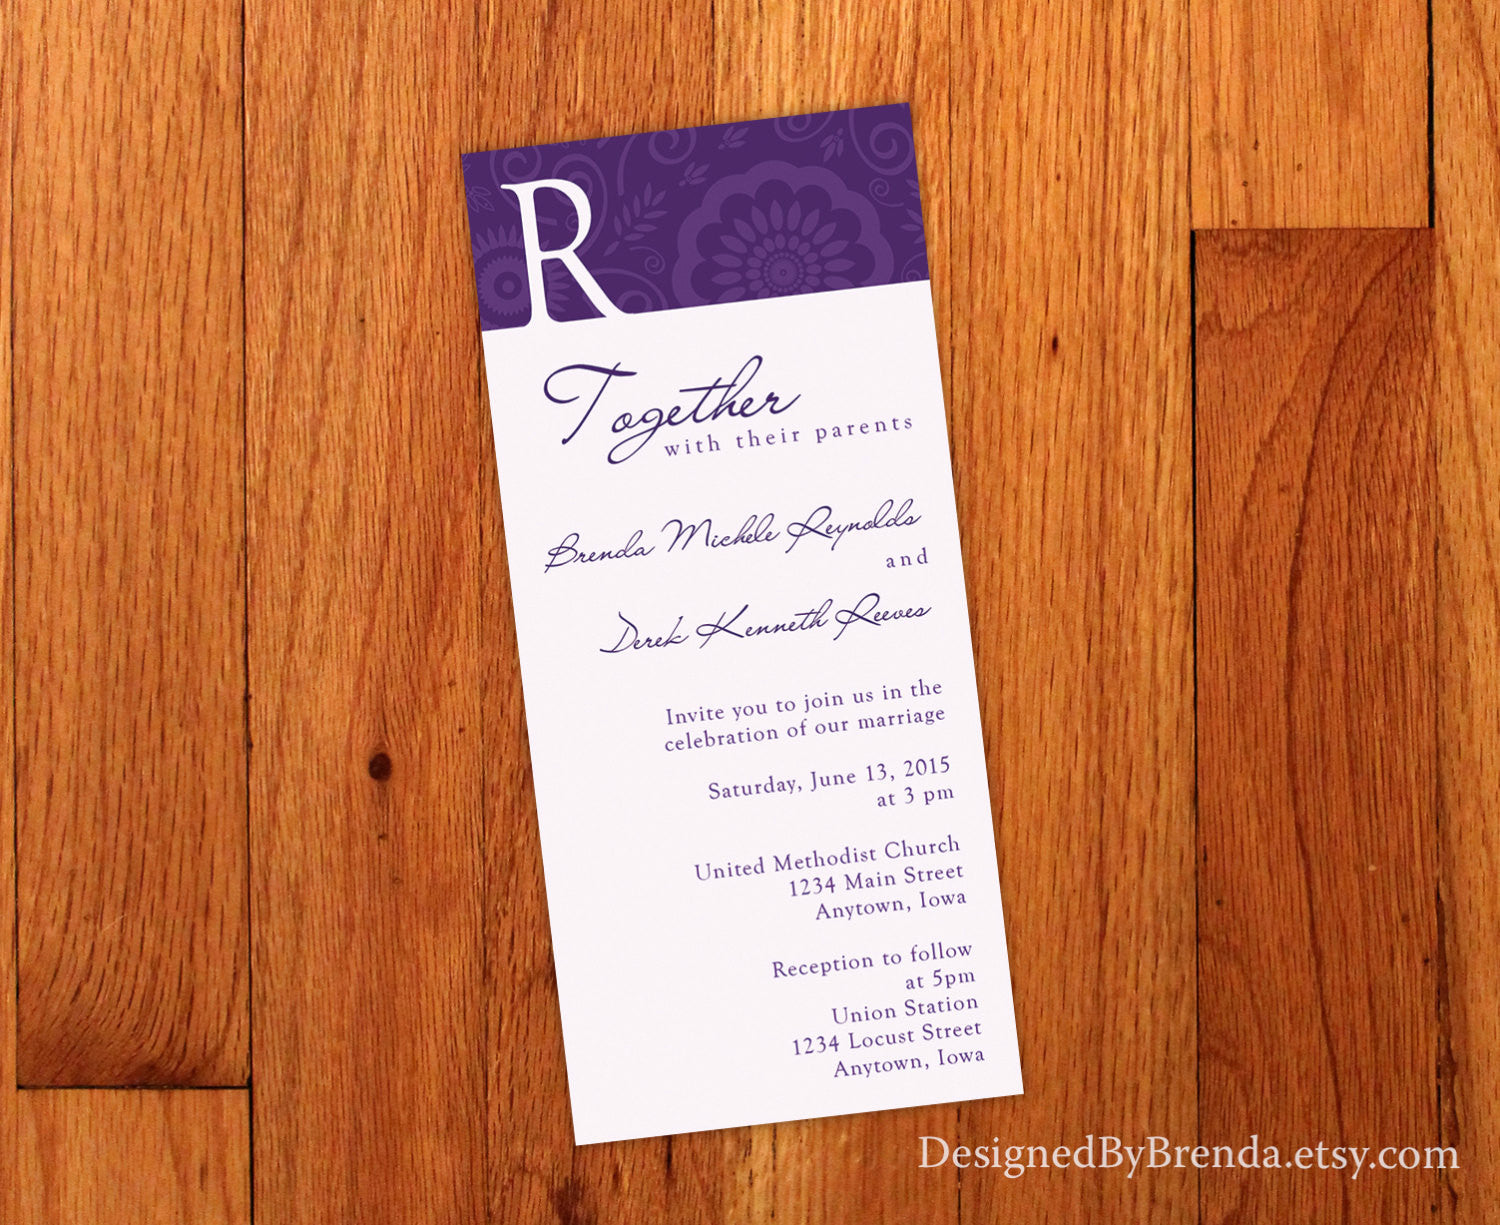 Purple Floral Wedding Invitation with Letter Initial - Whimsical Custom Design